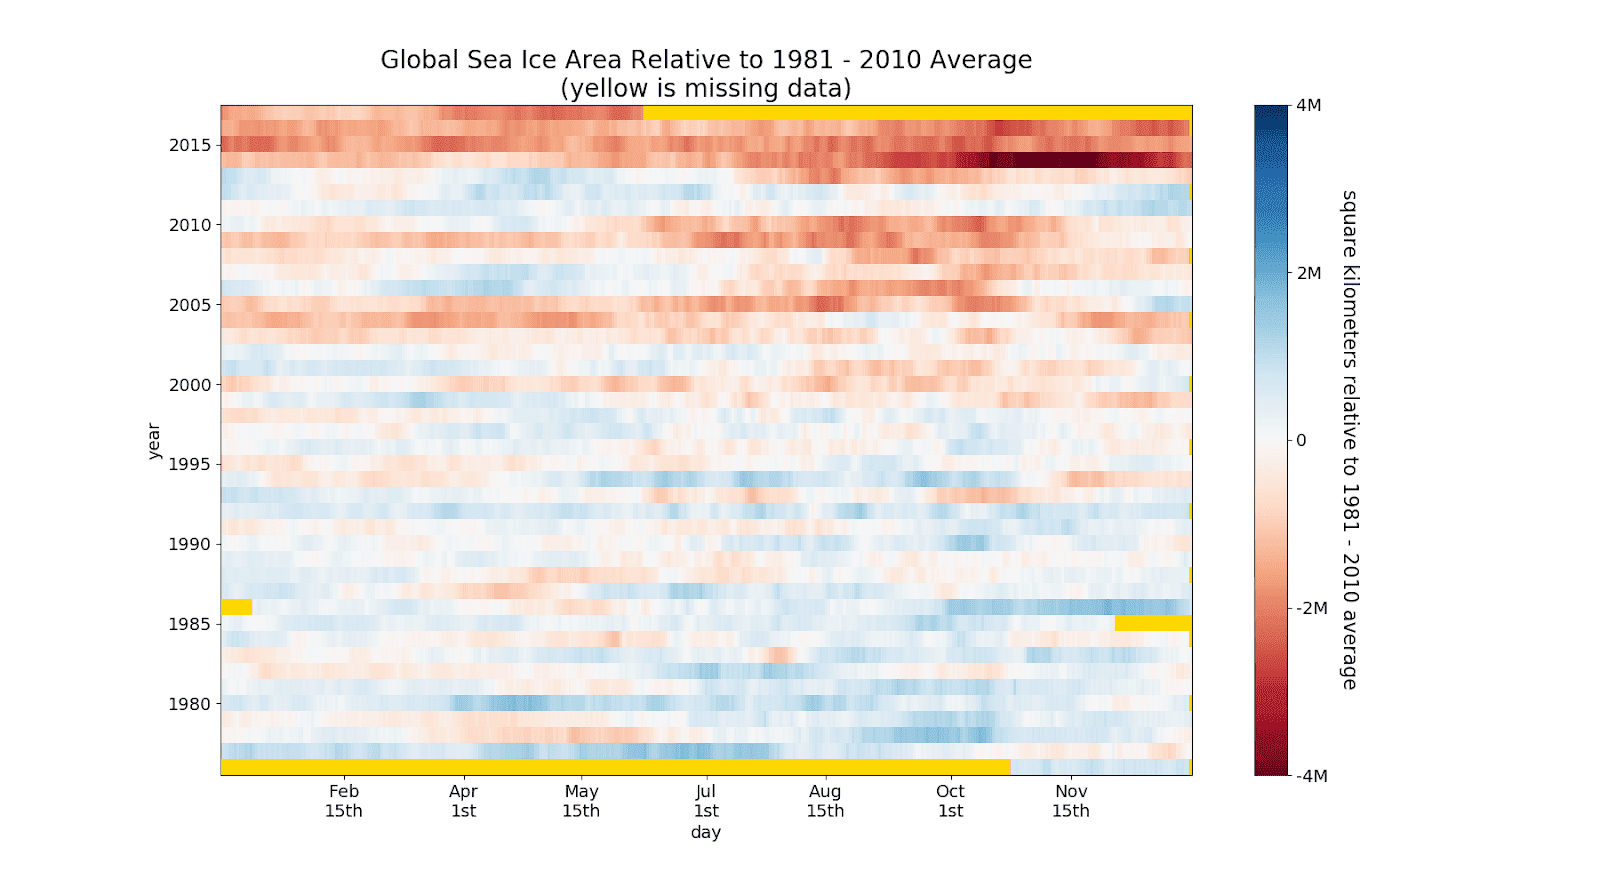 loss in sea ice extent over time